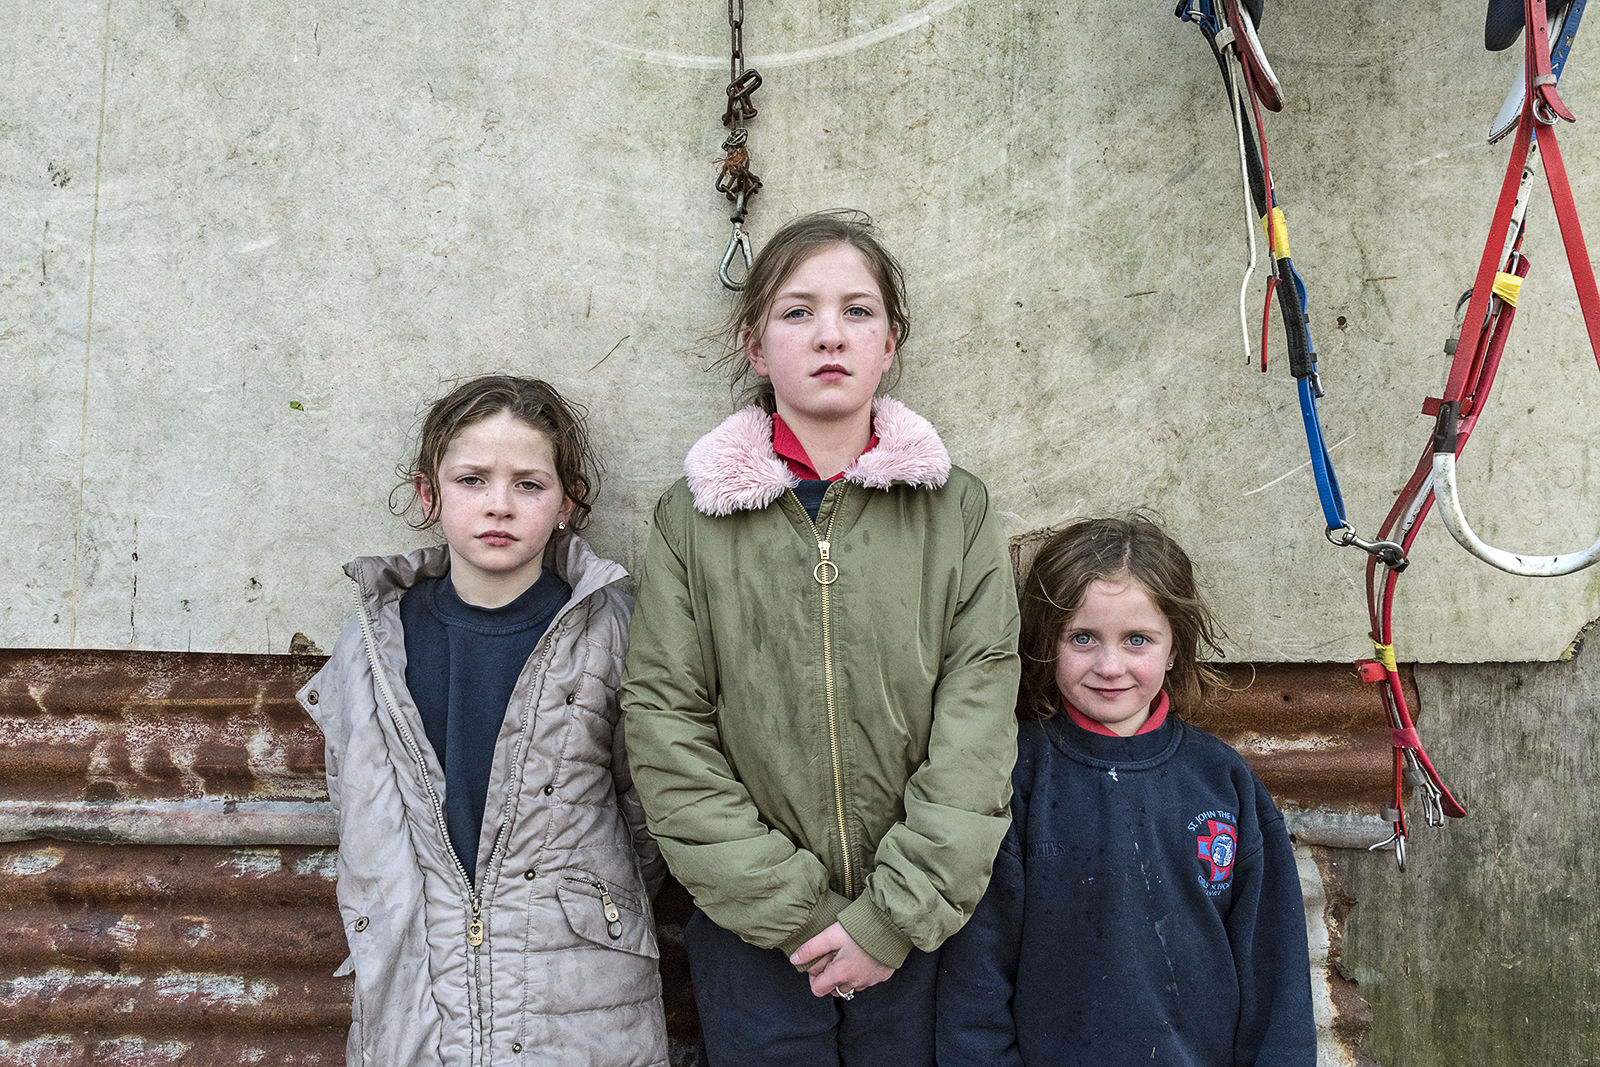 Biddy, Mary and Diane, Reilly Sisters, Tipperary, Ireland 2020